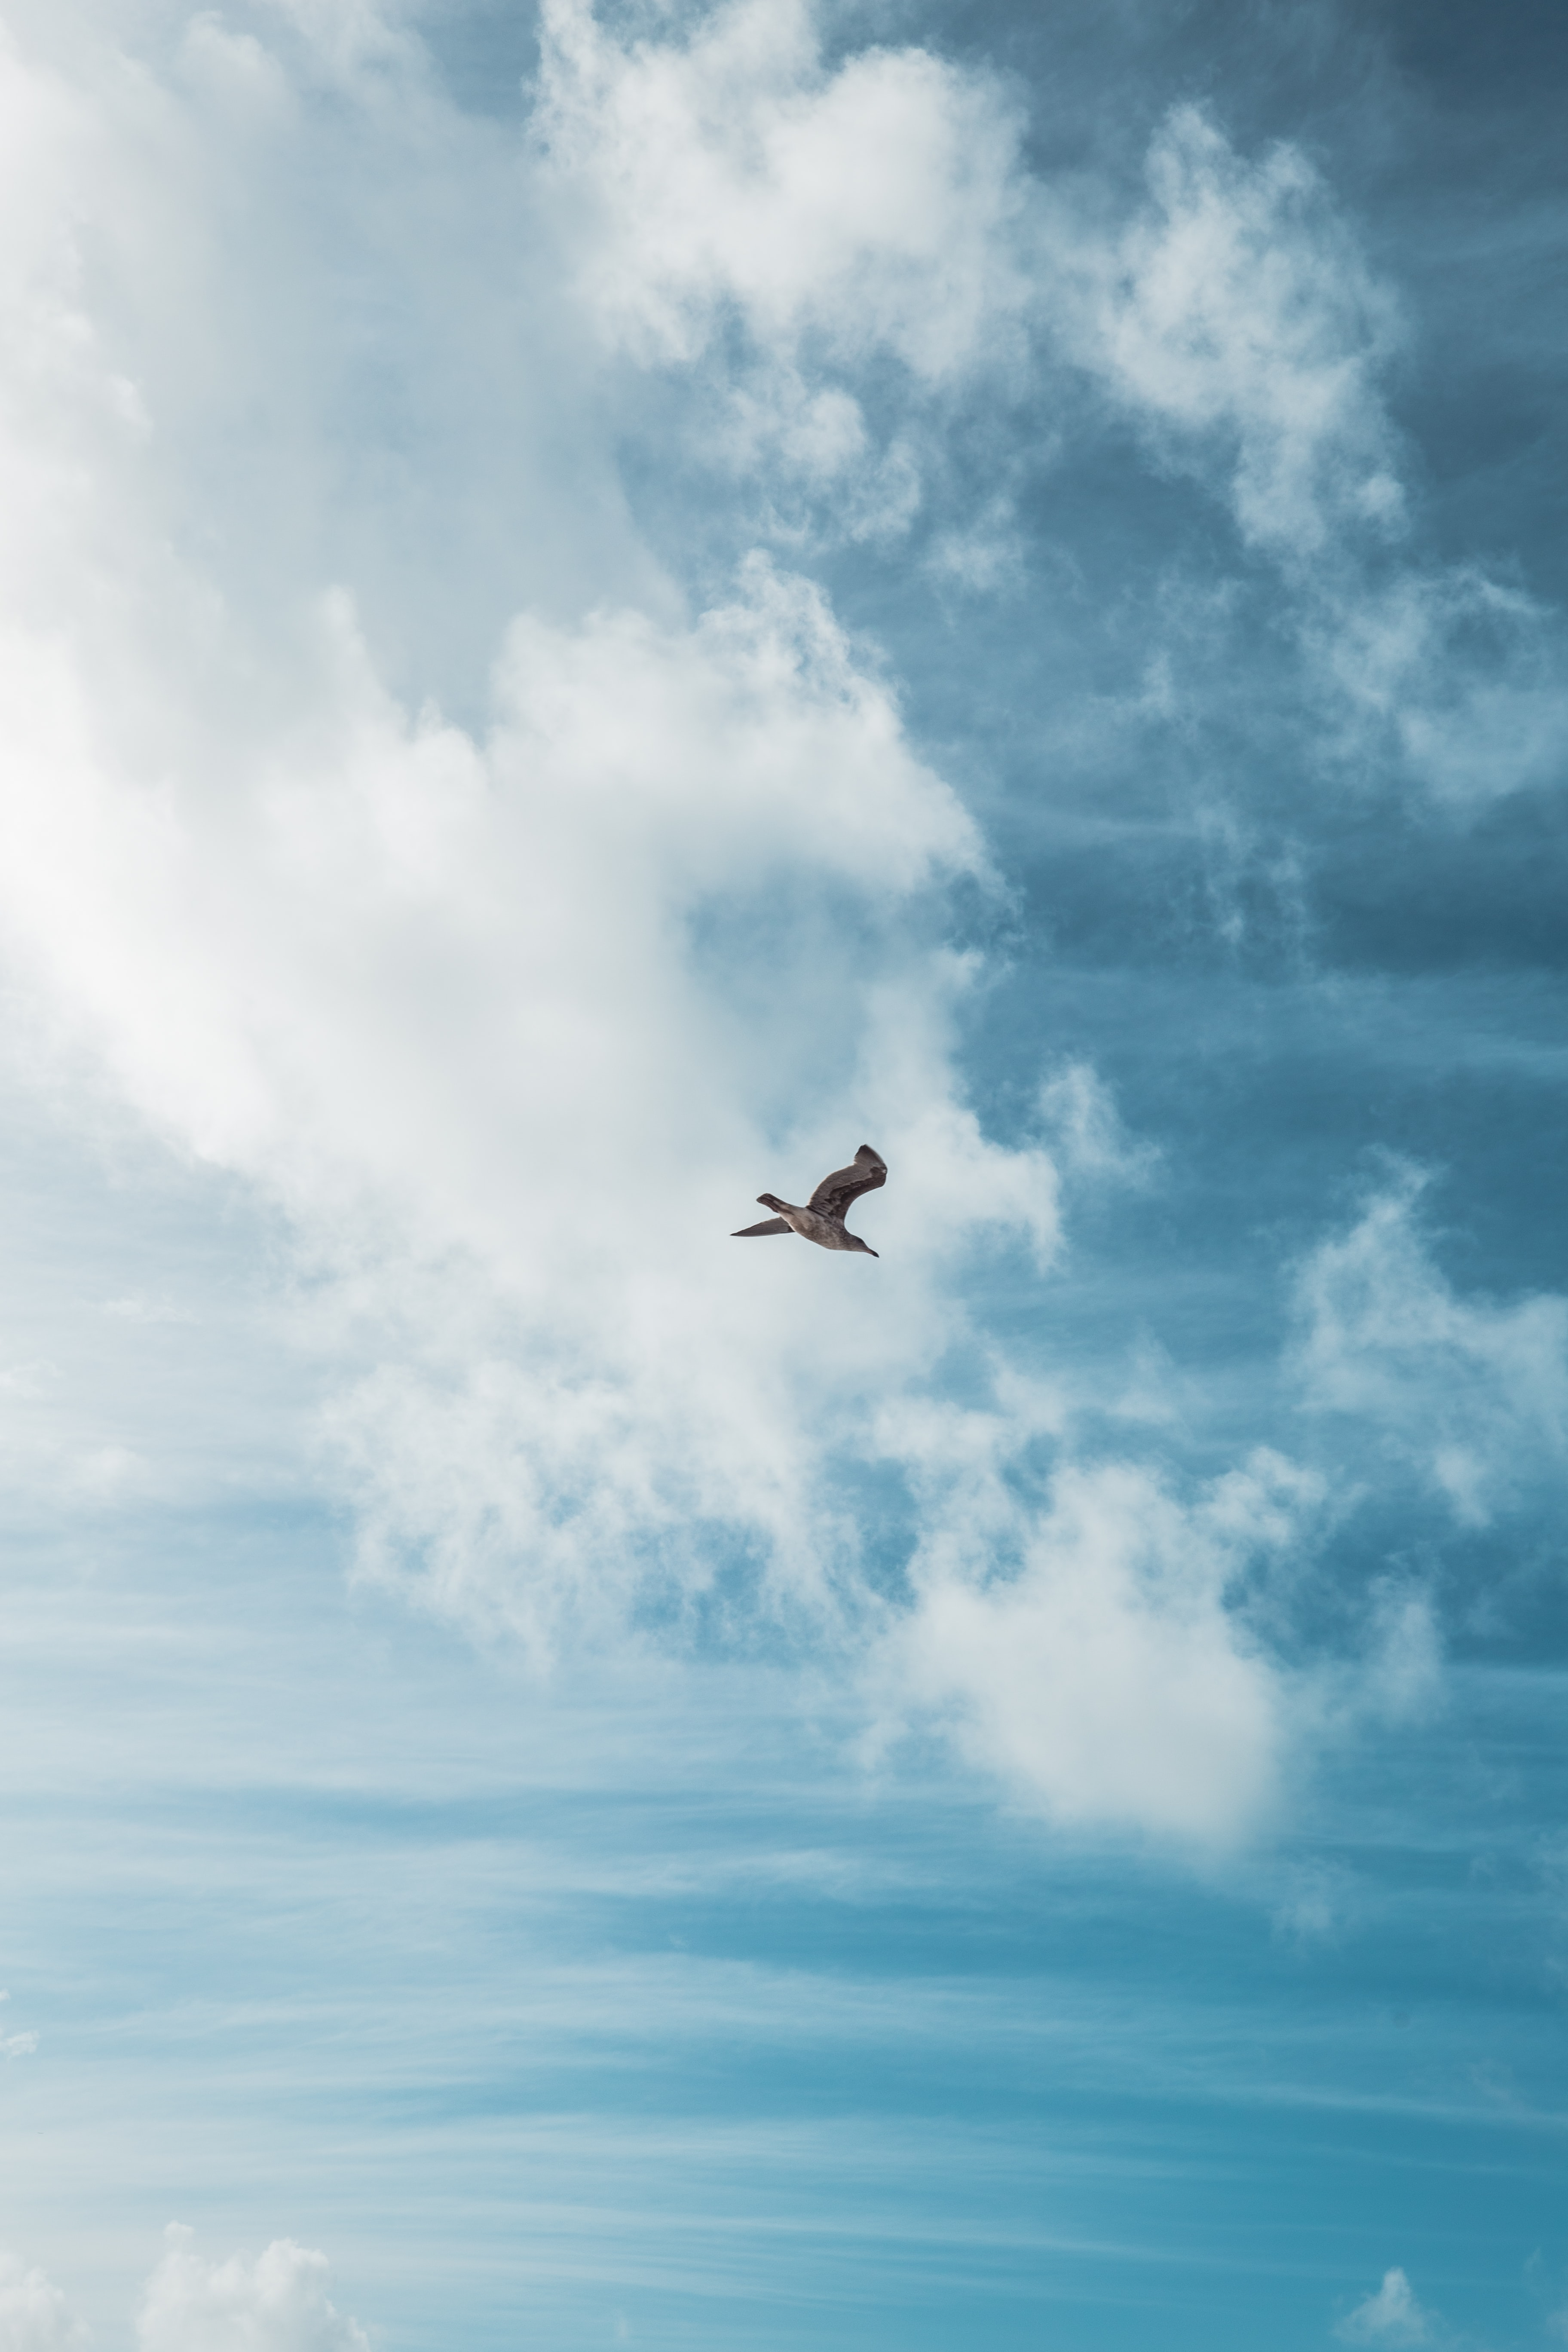 bird flying on the sky with white clouds during daytime